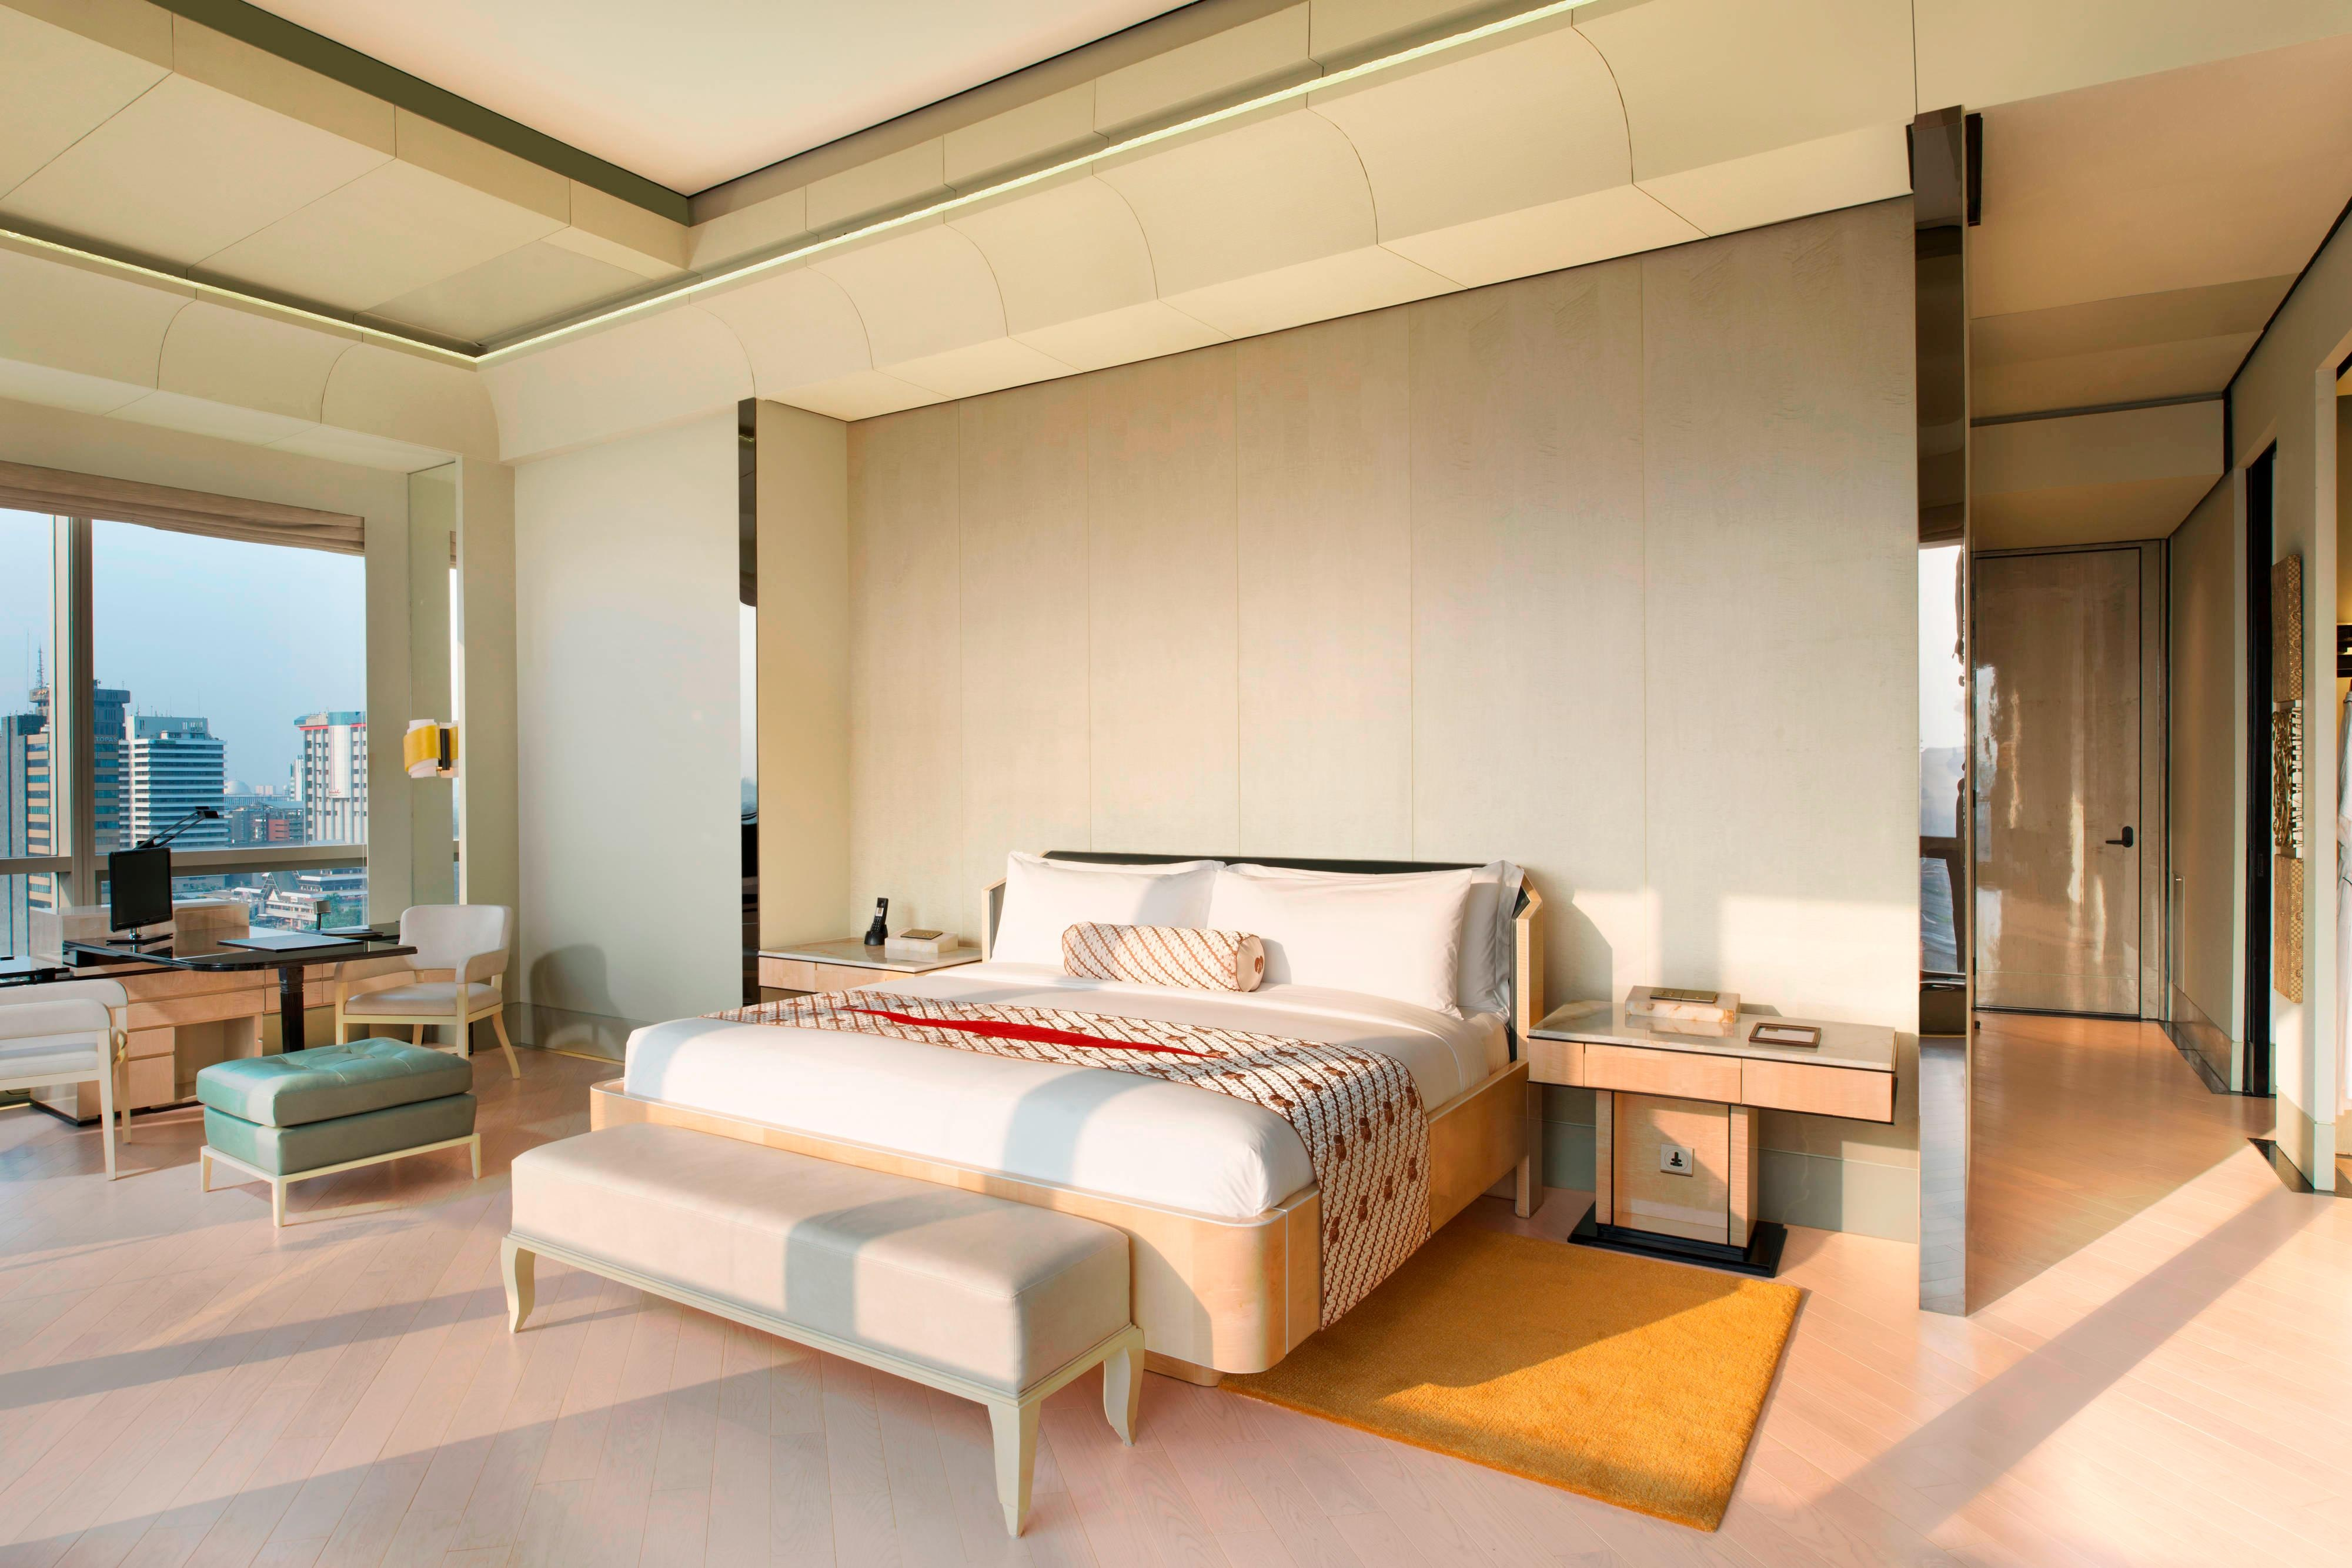 Executive Room with spacious Living Area in daylight